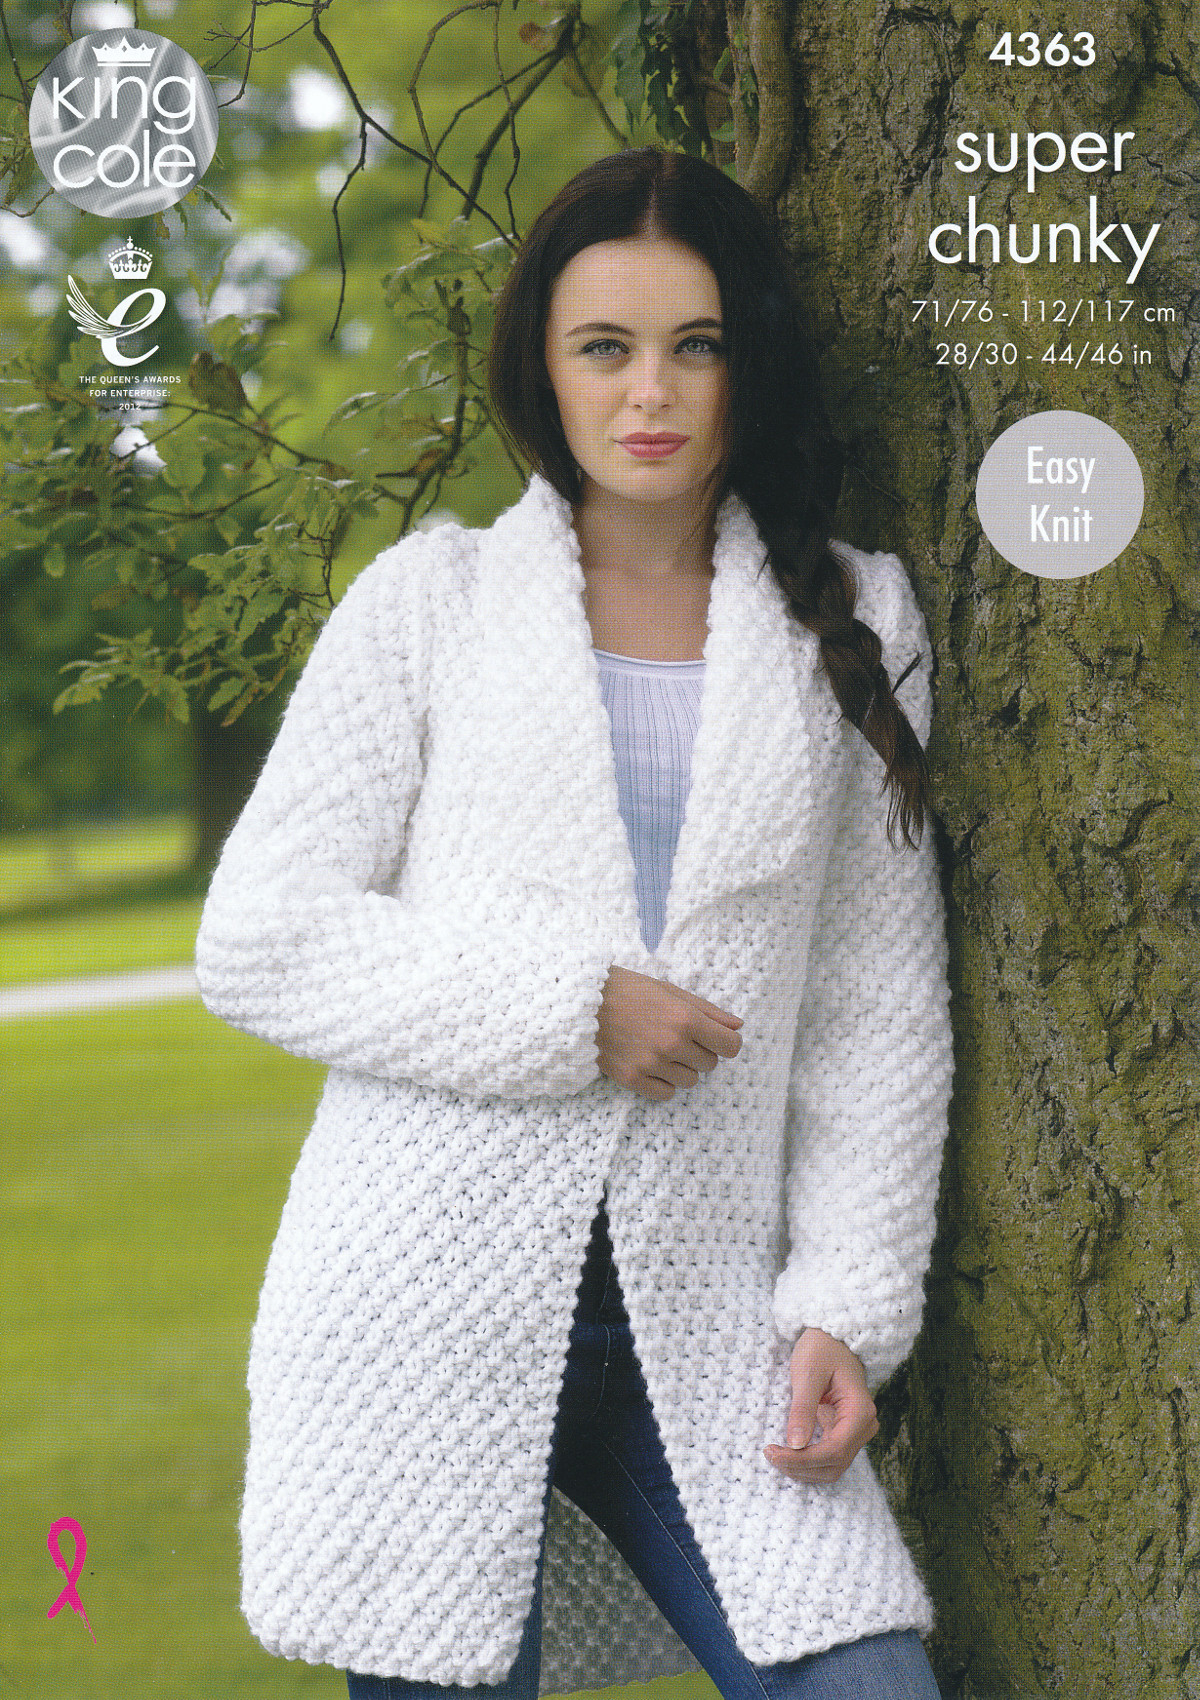 Knit Cardigan Pattern Details About Ladies Super Chunky Knitting Pattern King Cole Easy Knit Sweater Jacket 4363